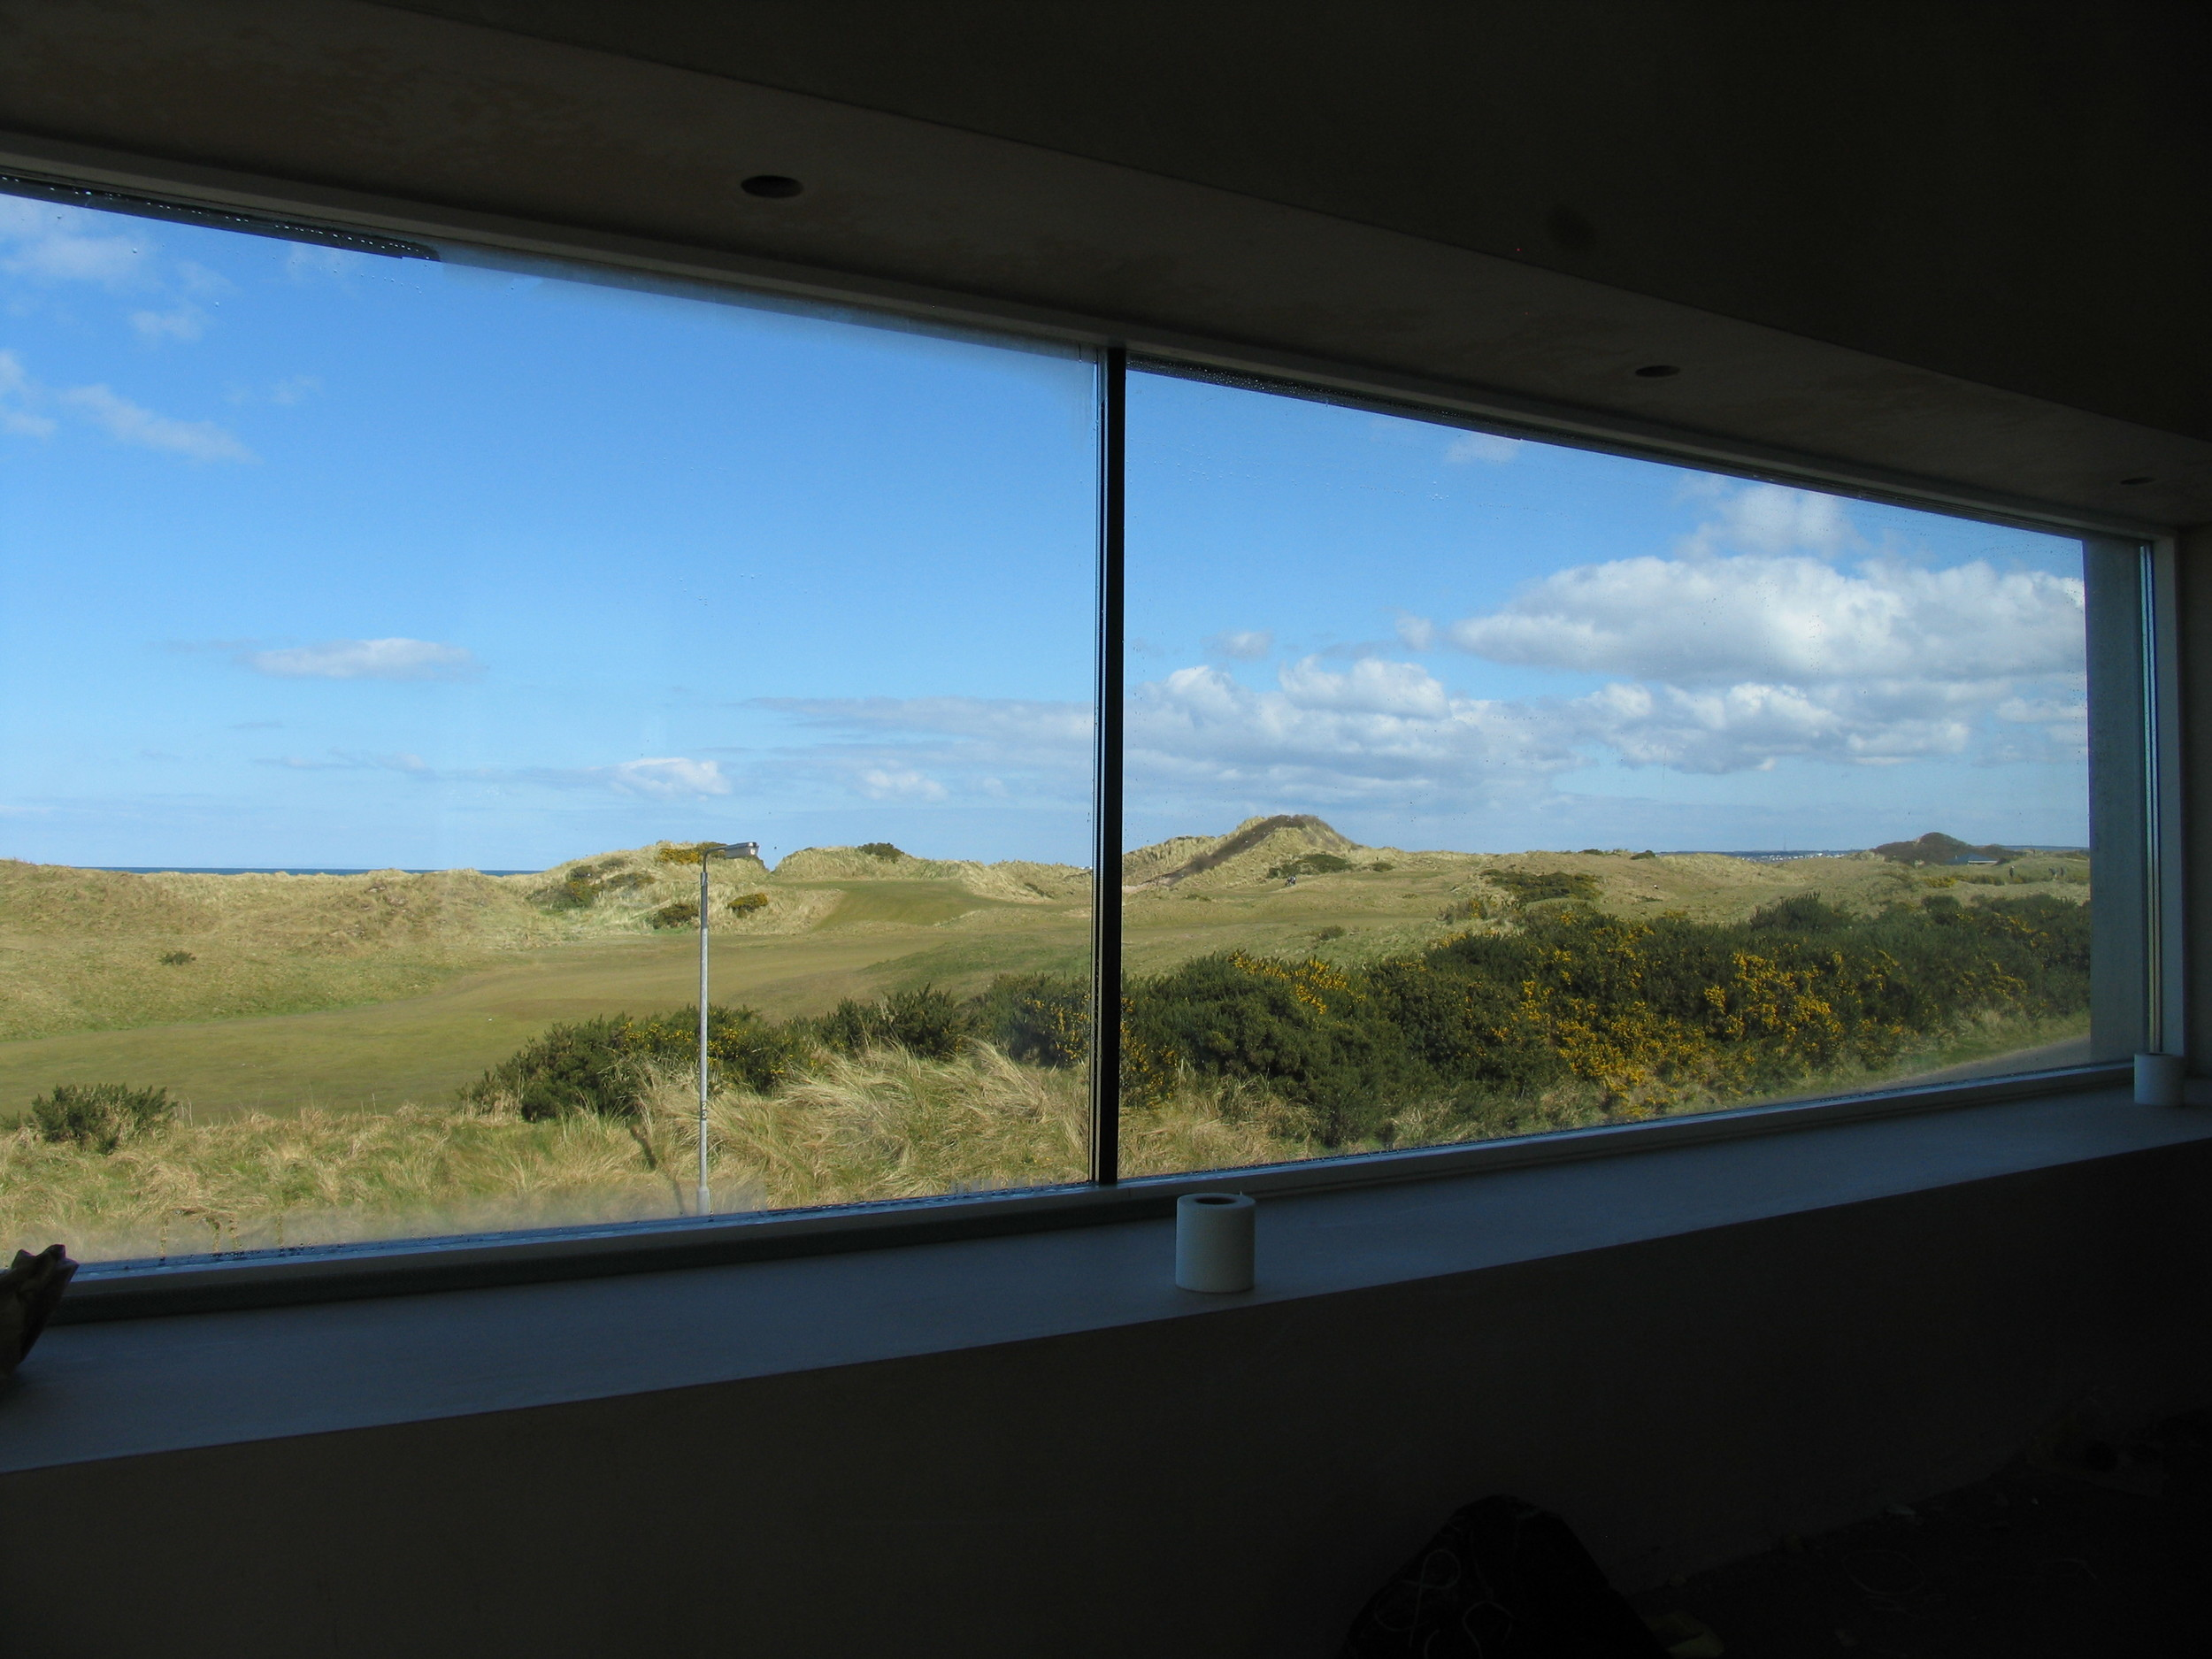 view from the lounge picture window overlooking the first hole at castlerock championship golf course